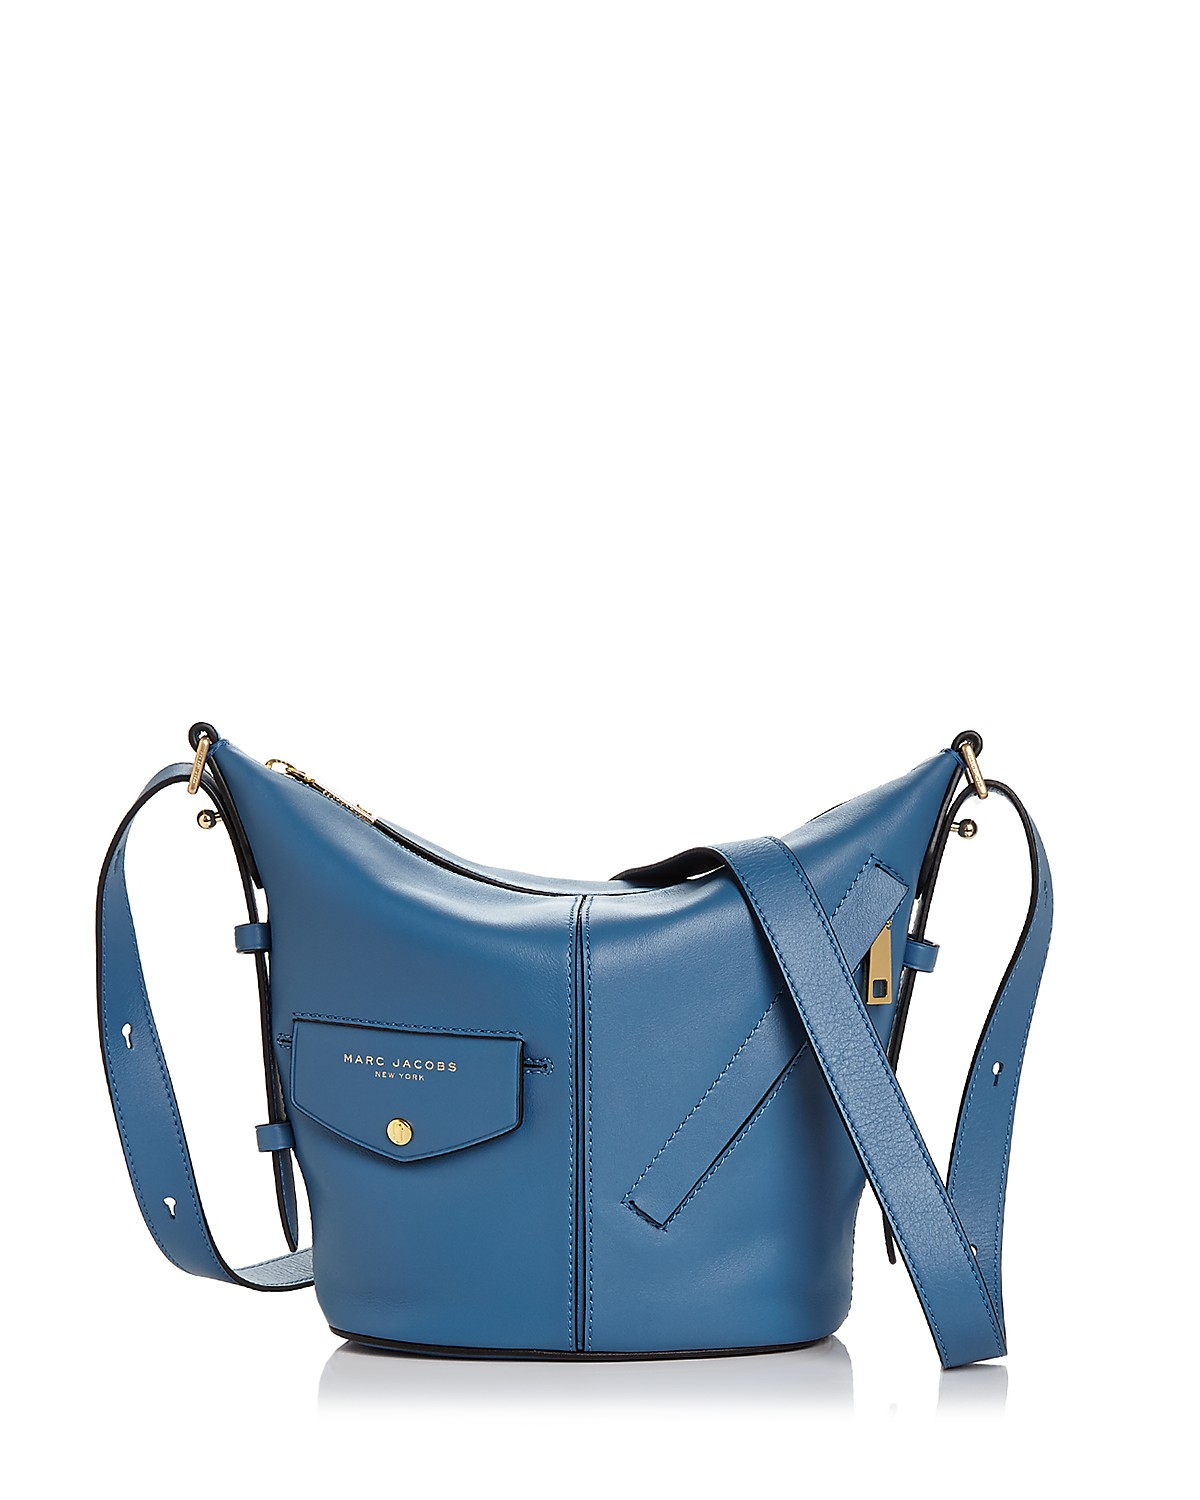 9fdc4fc54a1b Bloomingdales  Up to 40% Off Handbags on Sale Brands Coach 1941